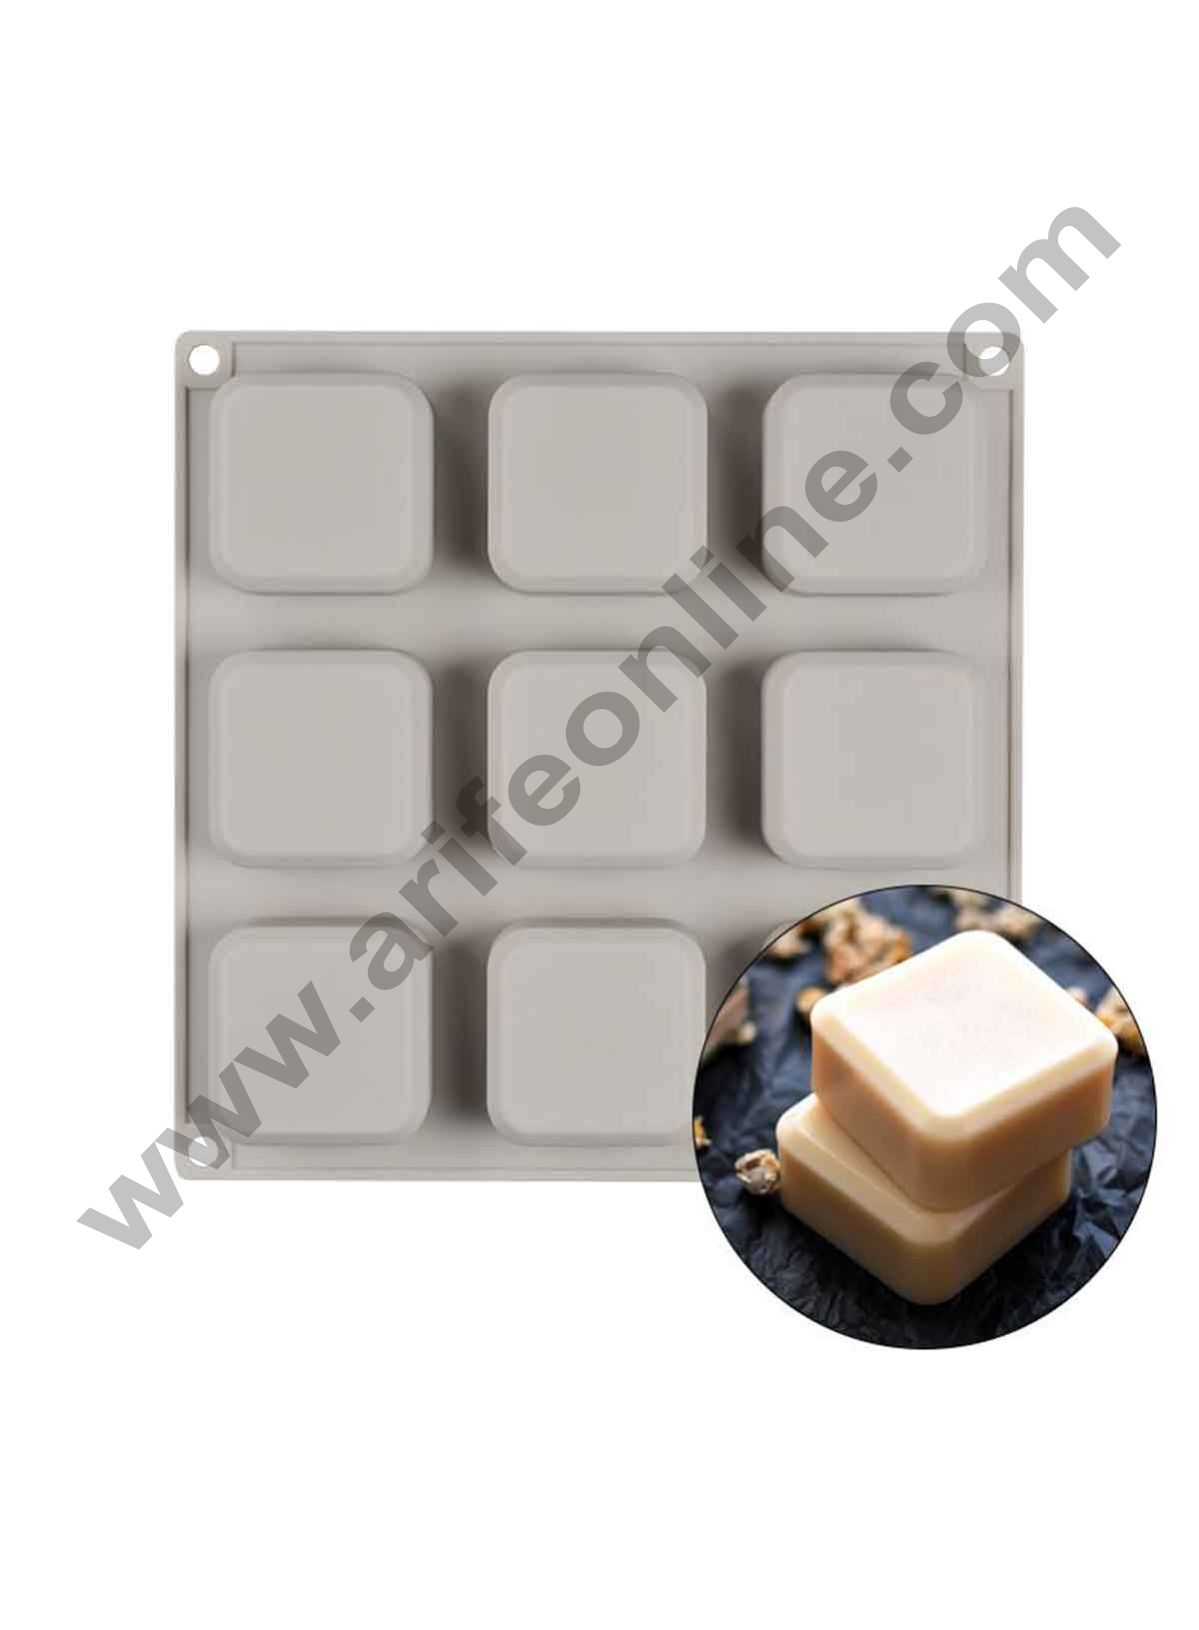 Cake Decor 9-Cavity Mold Safe Bakeware Square Silicone Molds for Cakes Mousse Dessert Pastry Soap and Muffin Baking Moulds